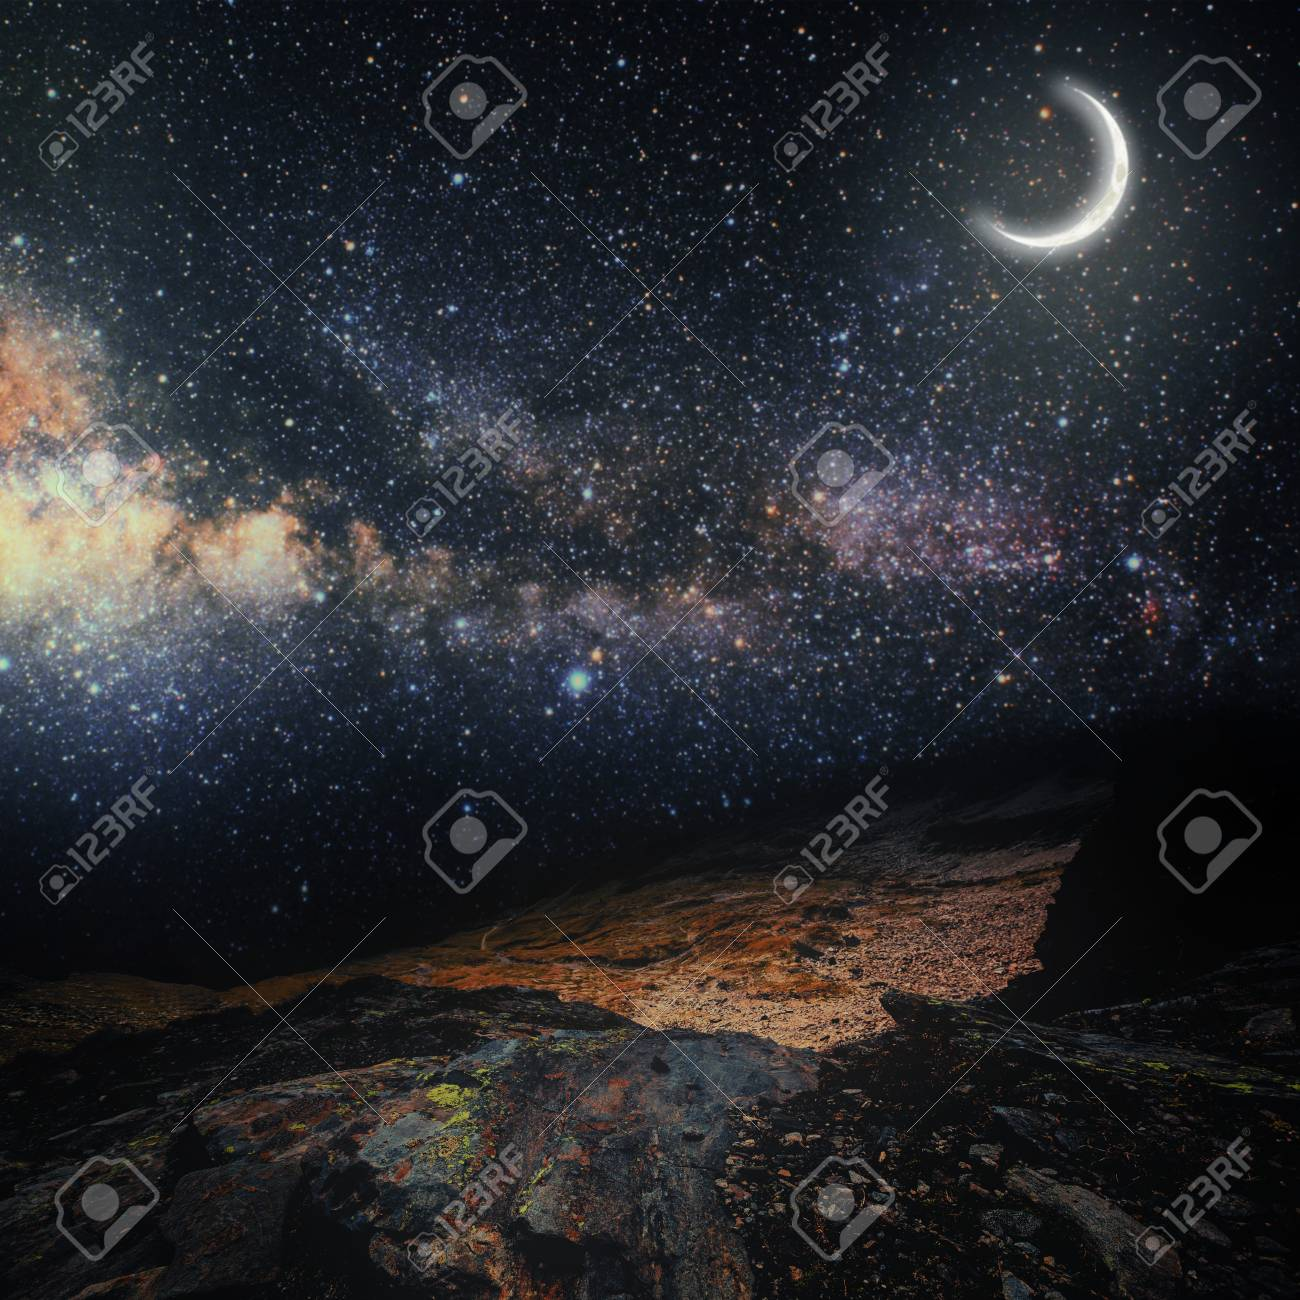 Mountain Backgrounds Night Sky With Stars And Moon Elements 1300x1300